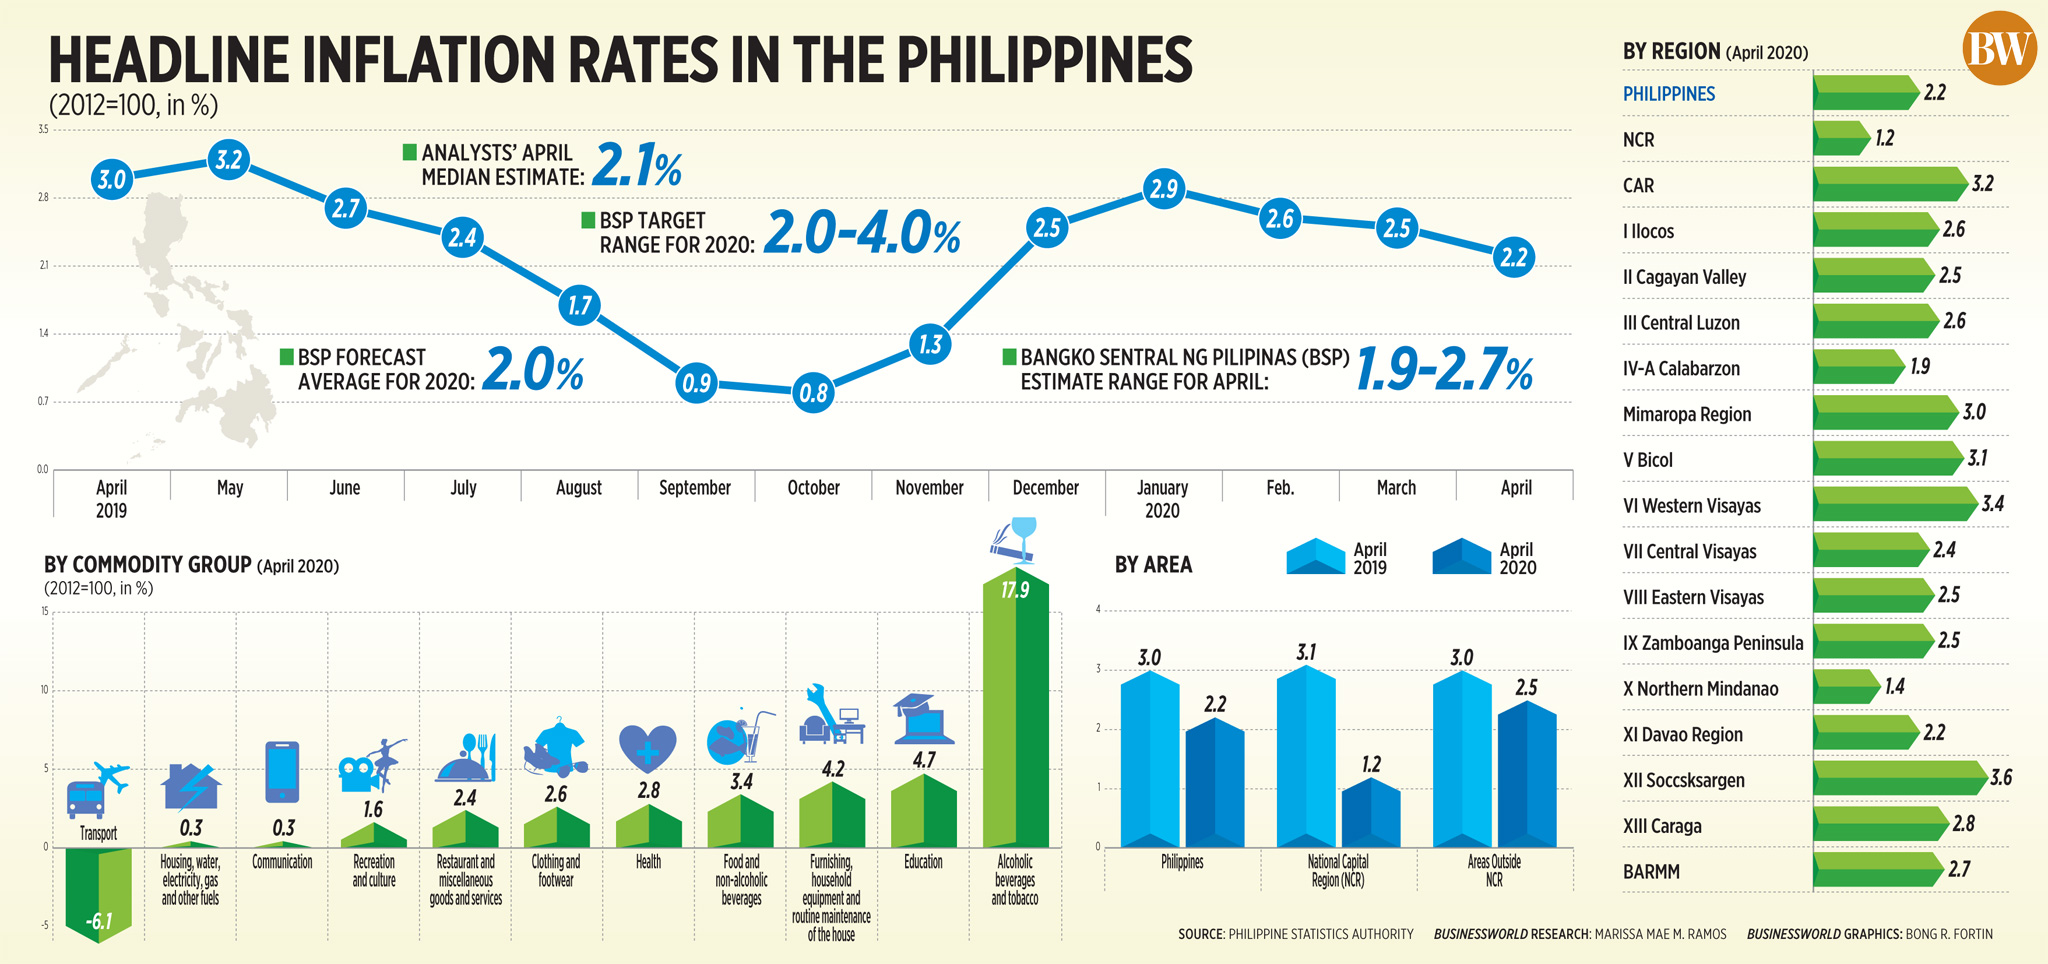 Headline inflation rates in the Philippines (April 2020)